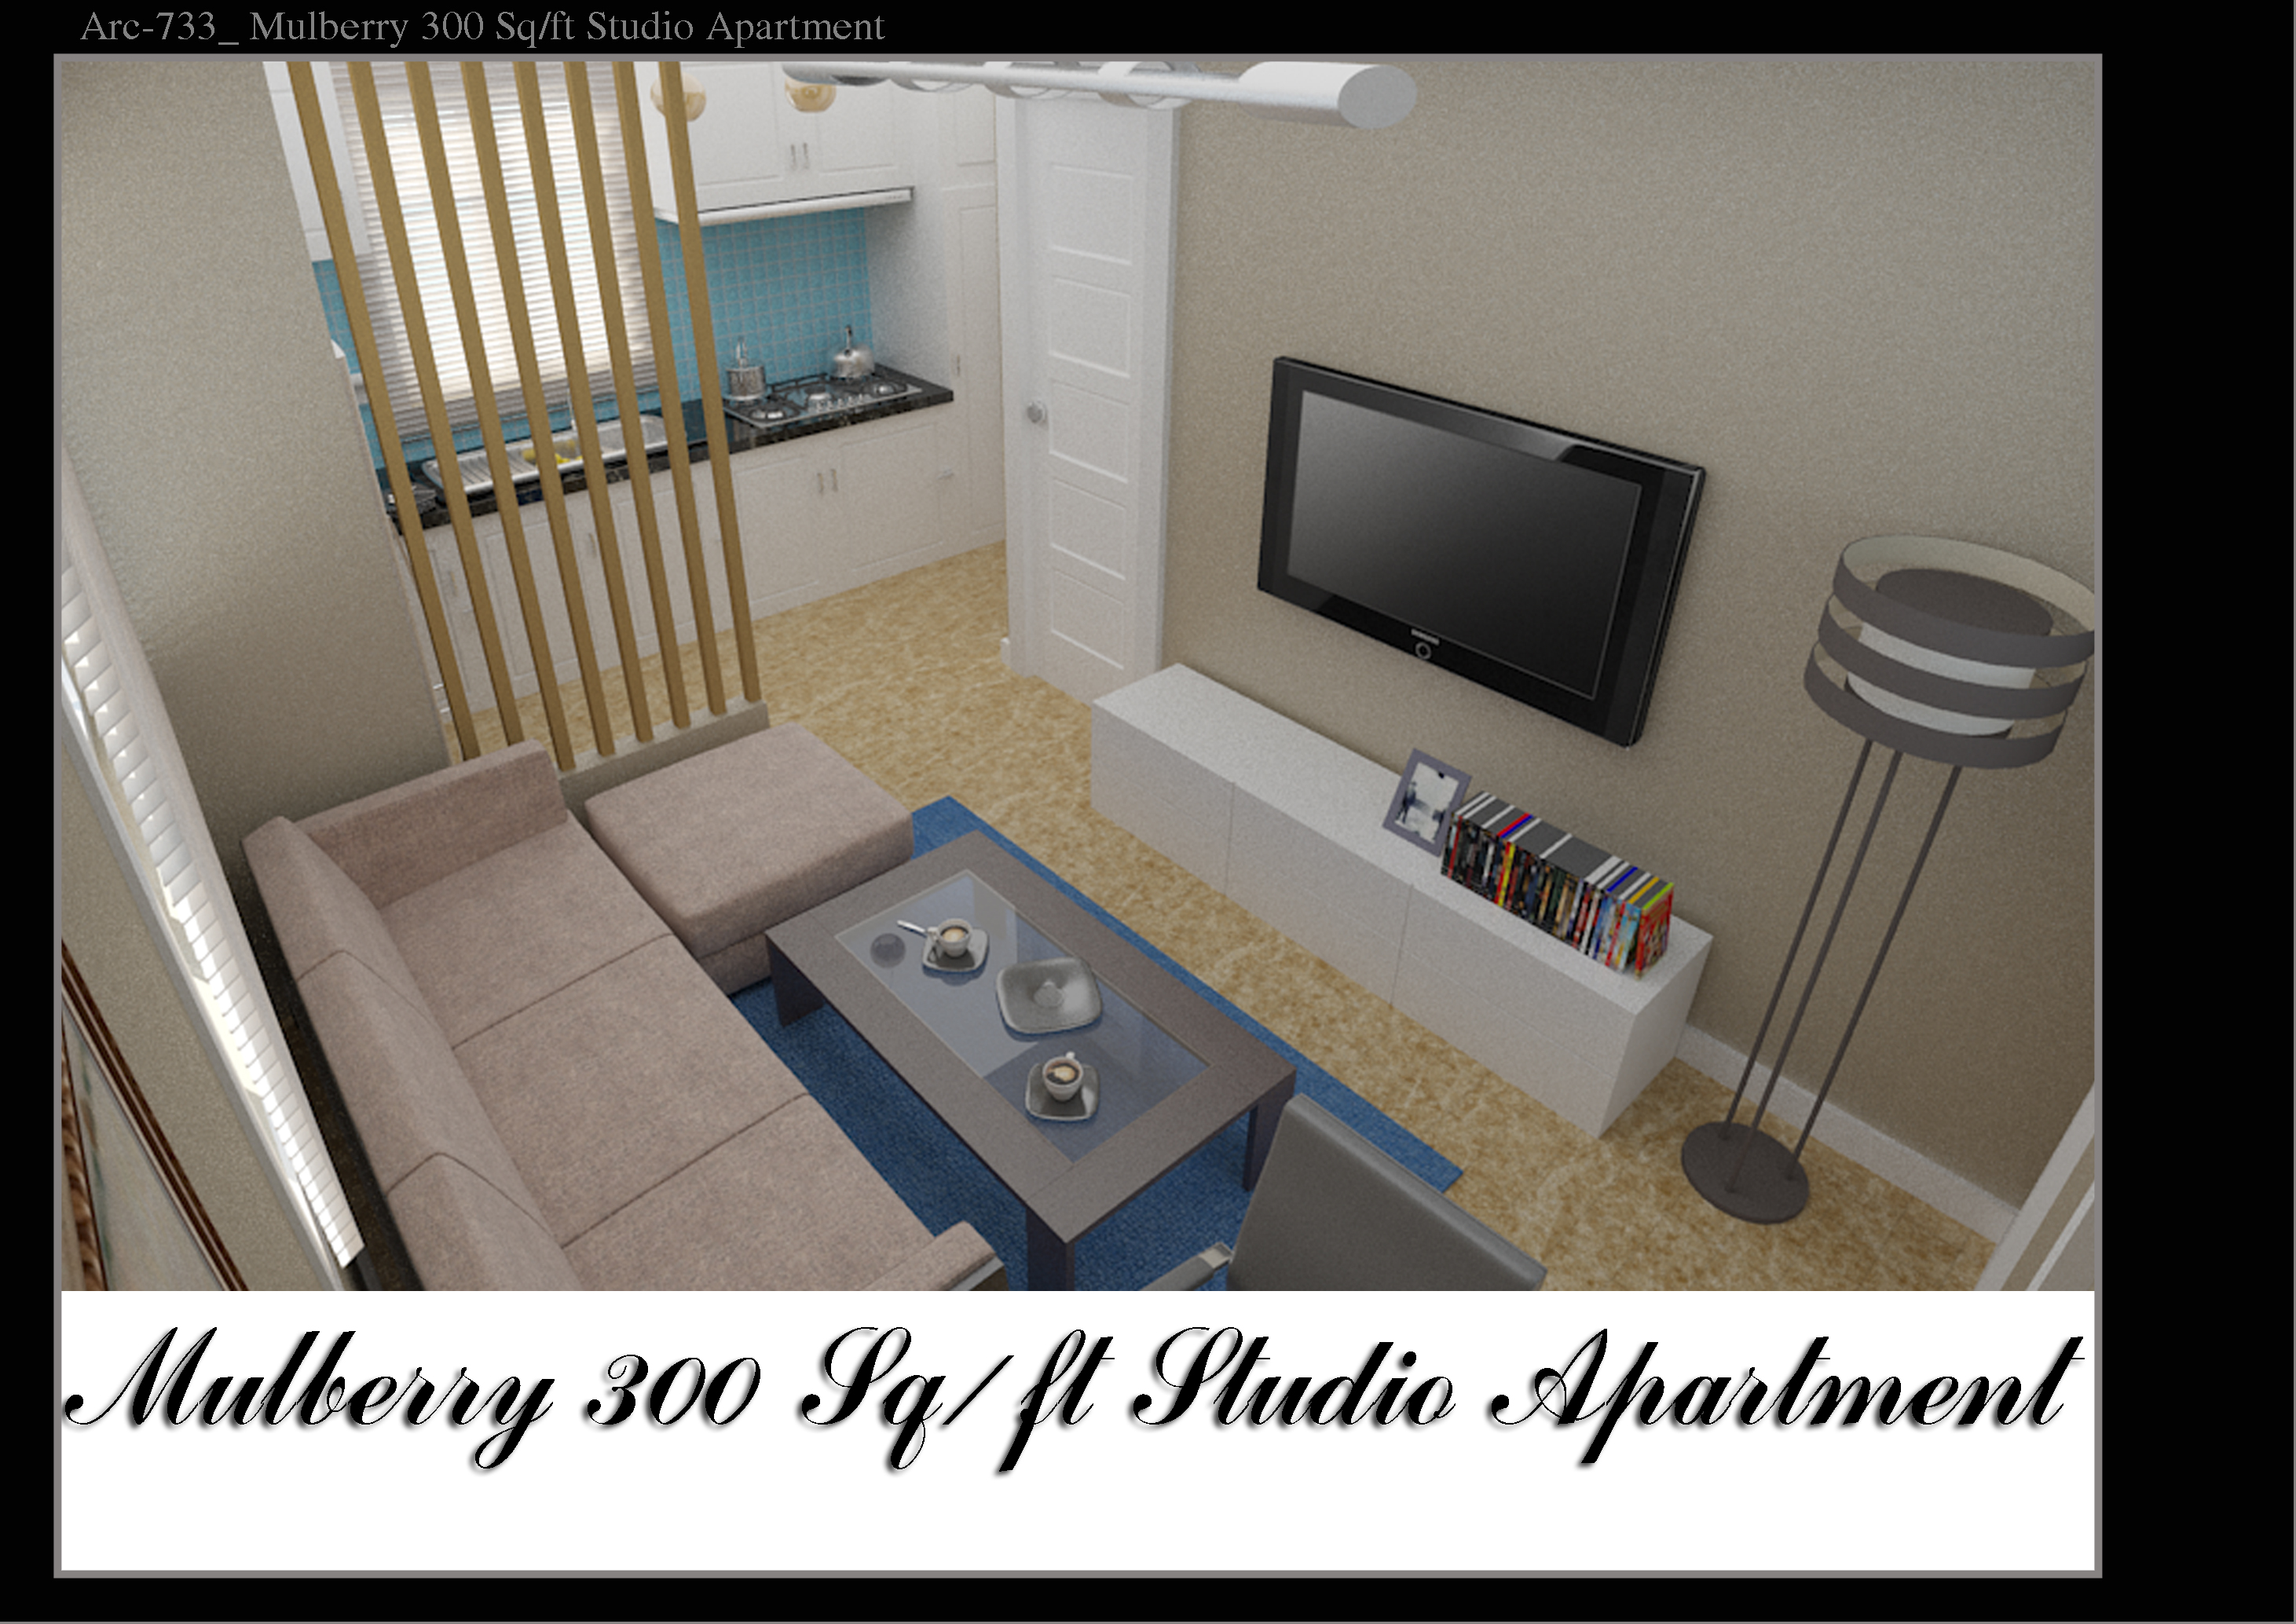 28 300 Sq Ft Apartment Mary Lee S Life In 300